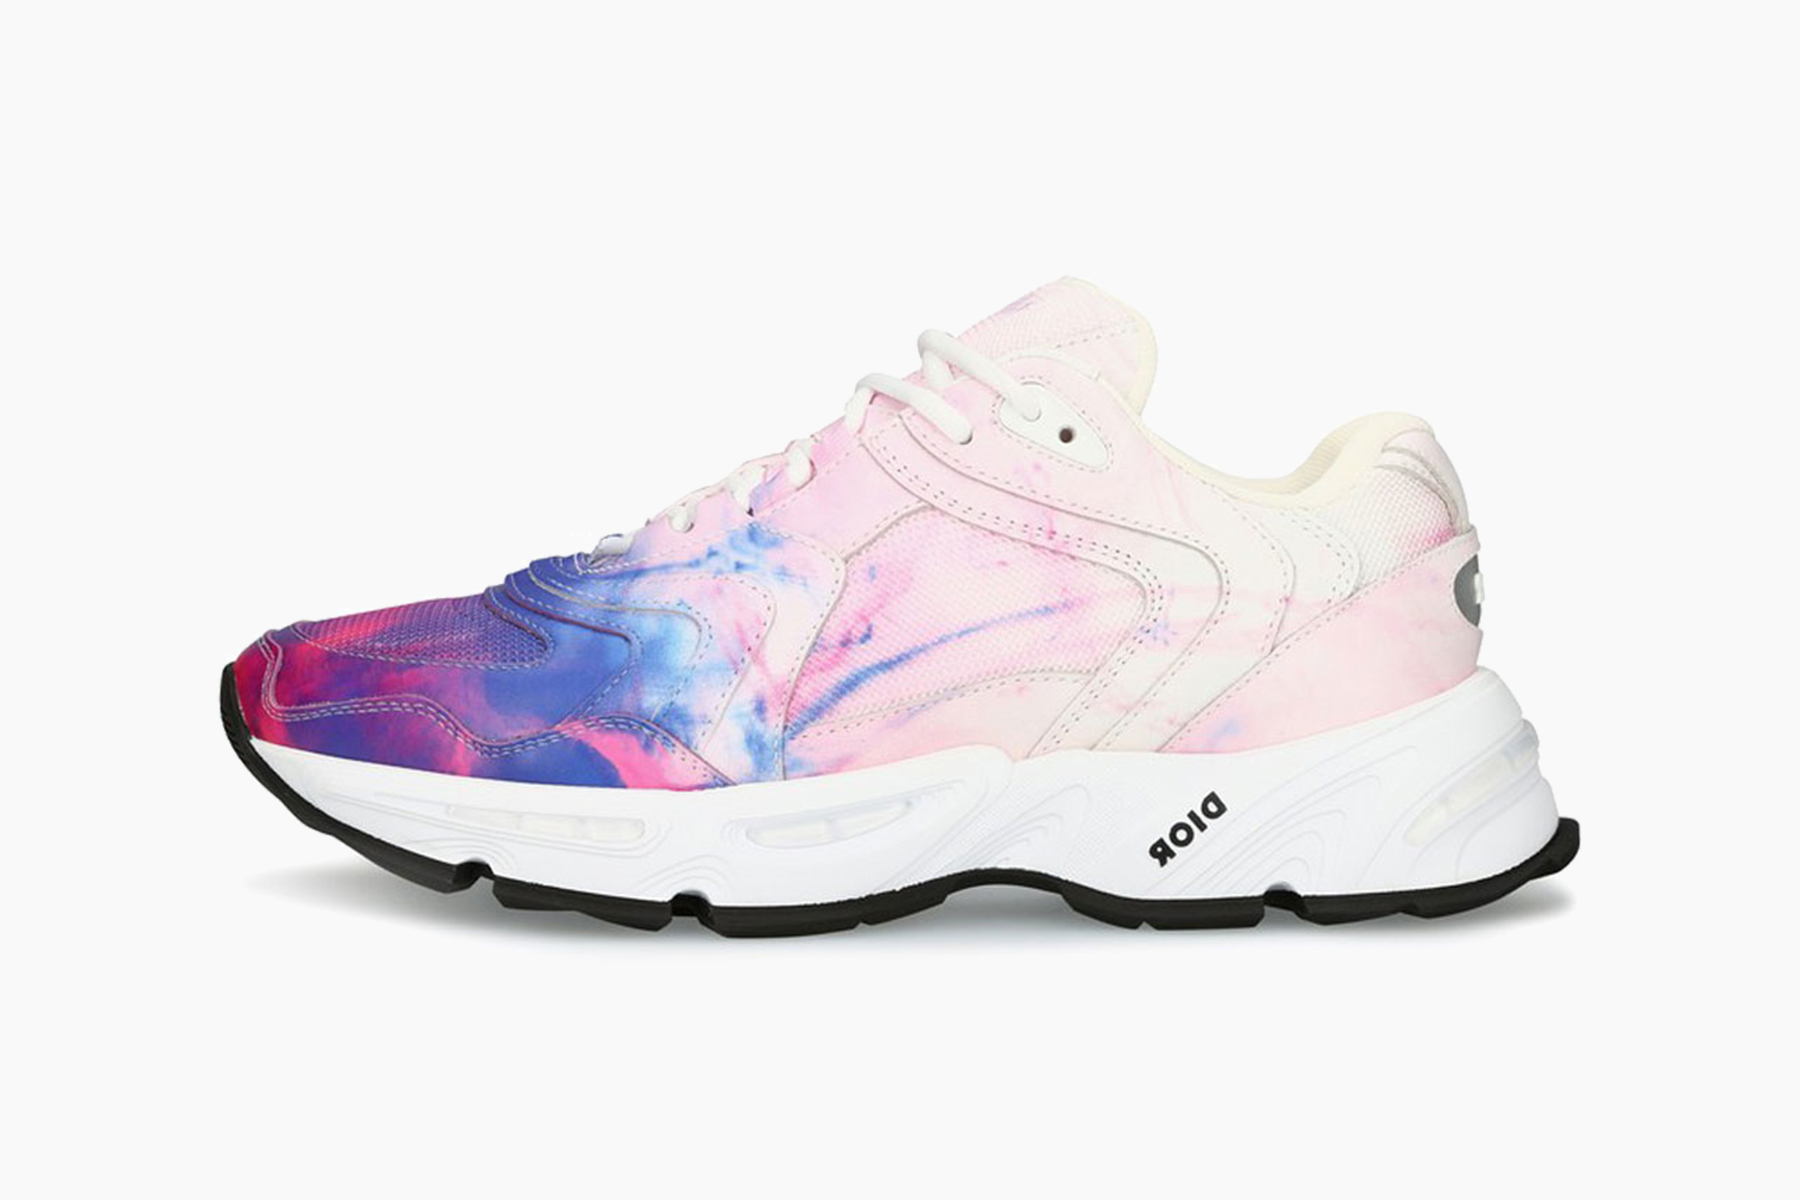 Dior CD1 Sneakers With Tie-Dye Print